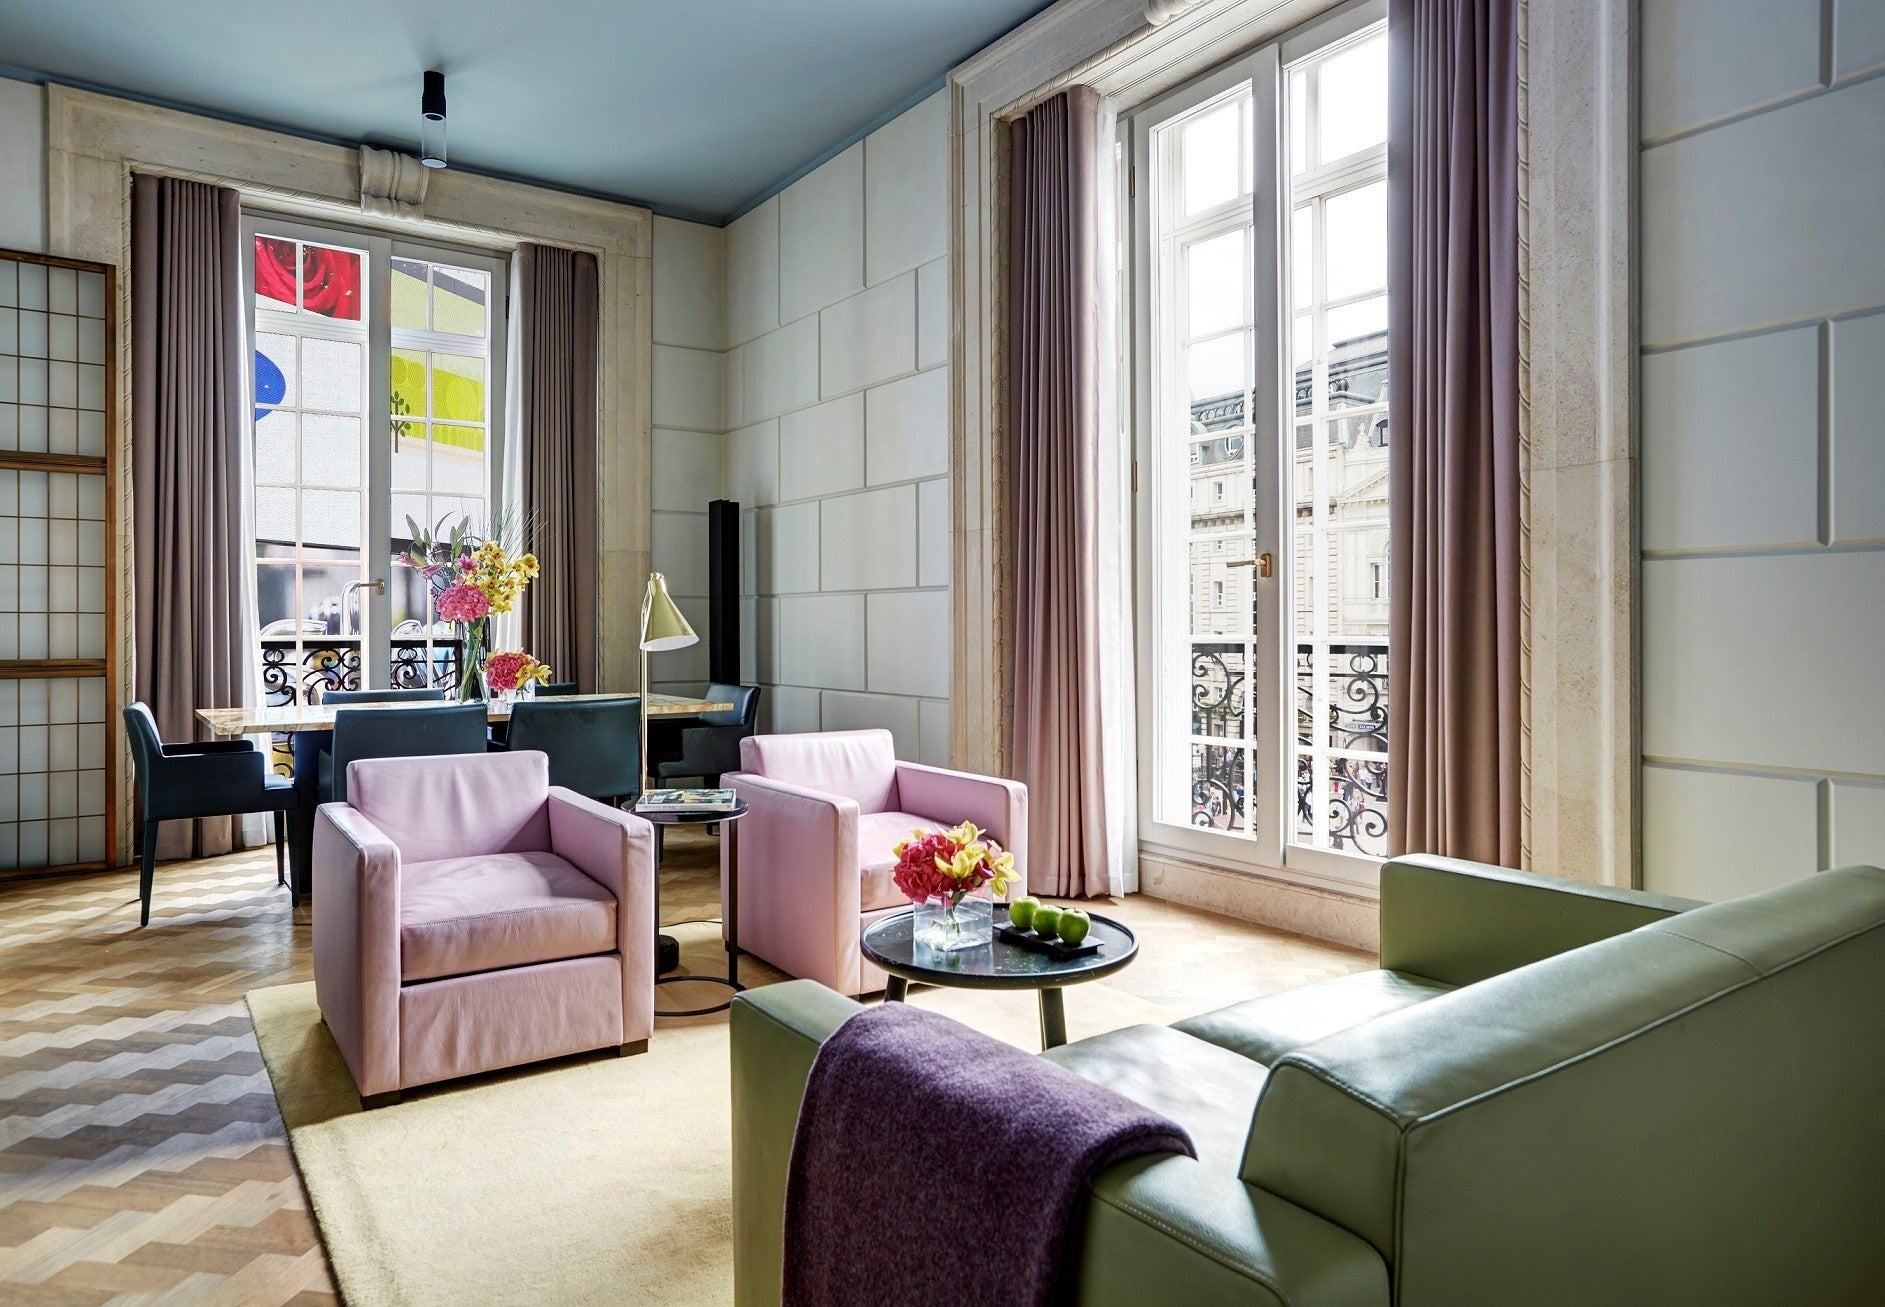 London Boutique Hotels 11 Of The Best Places To Stay The Independent